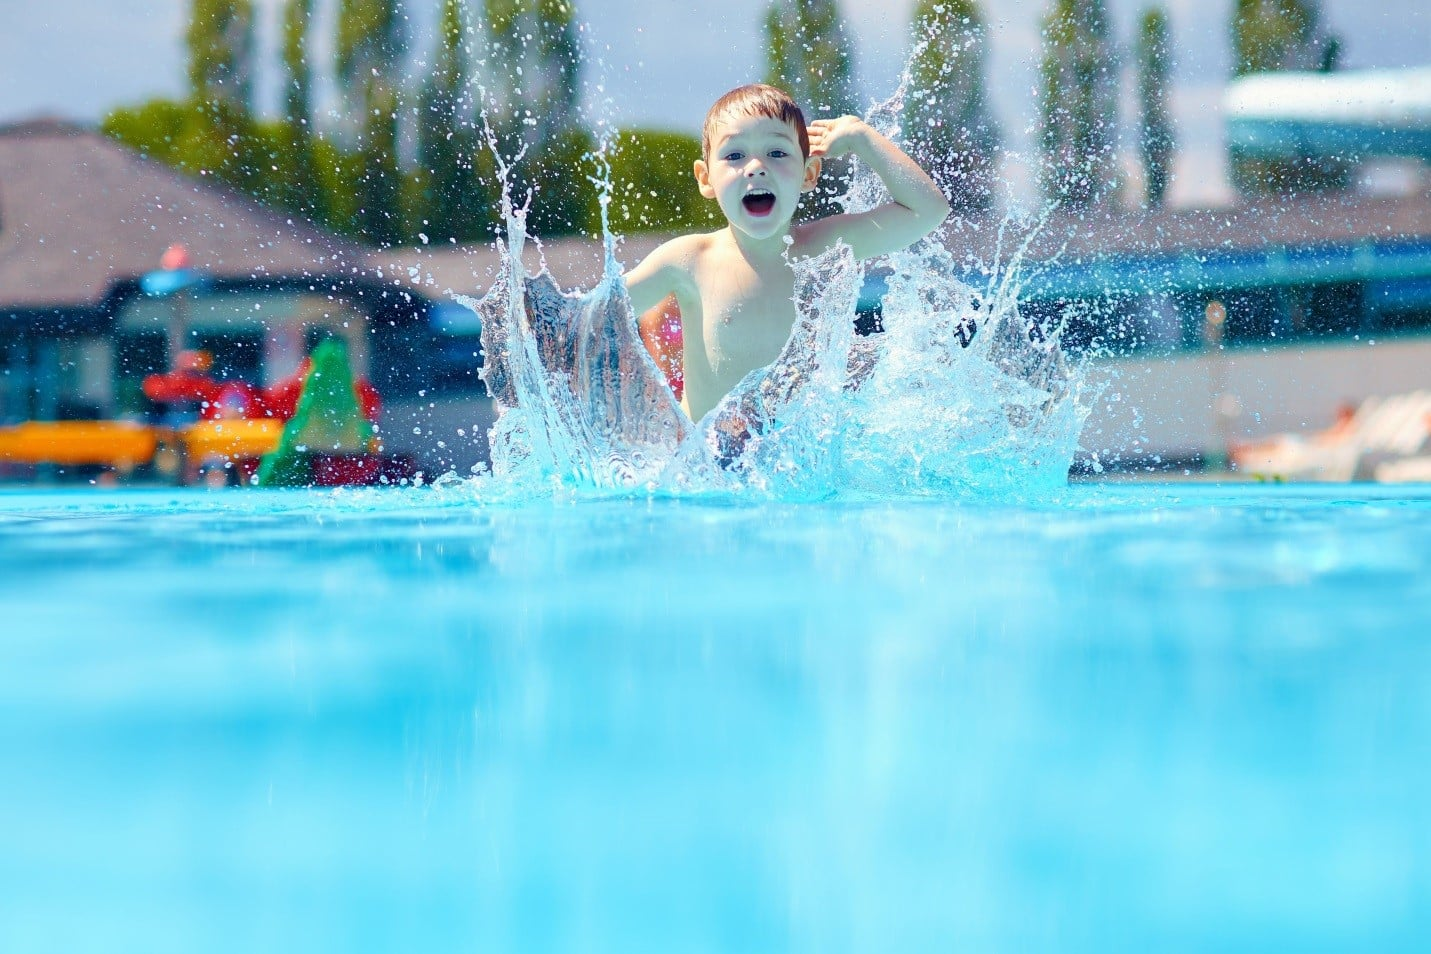 Summer Injuries to Watch Out For